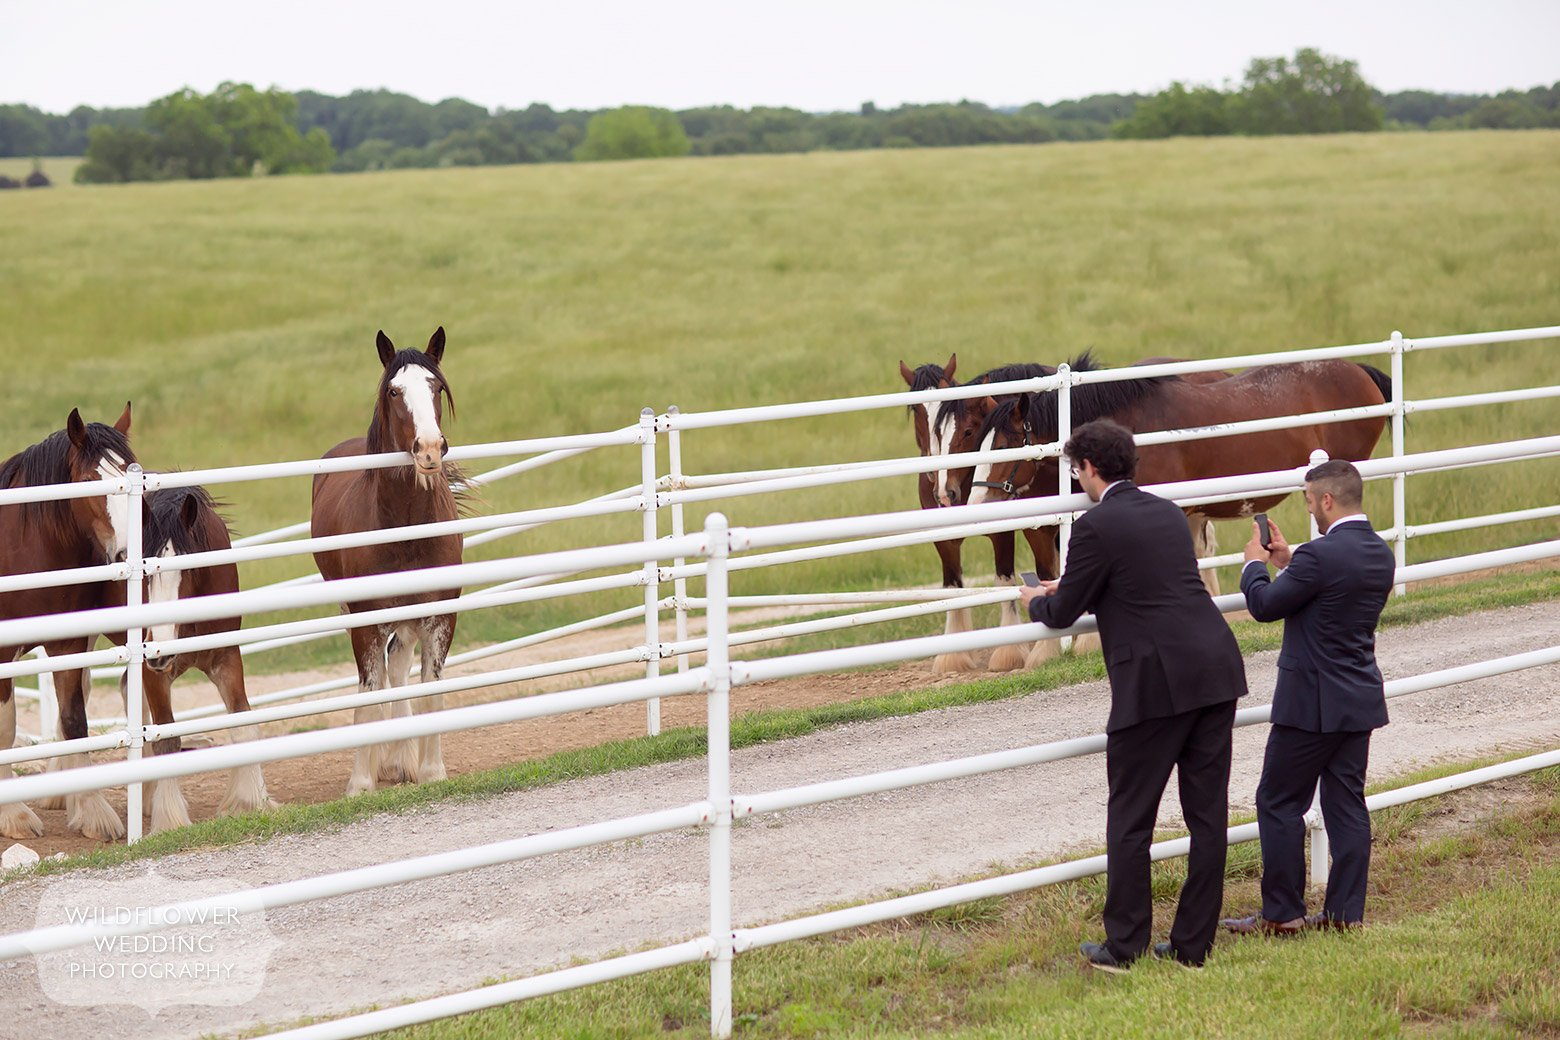 Clydesdales outside at Cooper's Ridge in Boonville, MO.